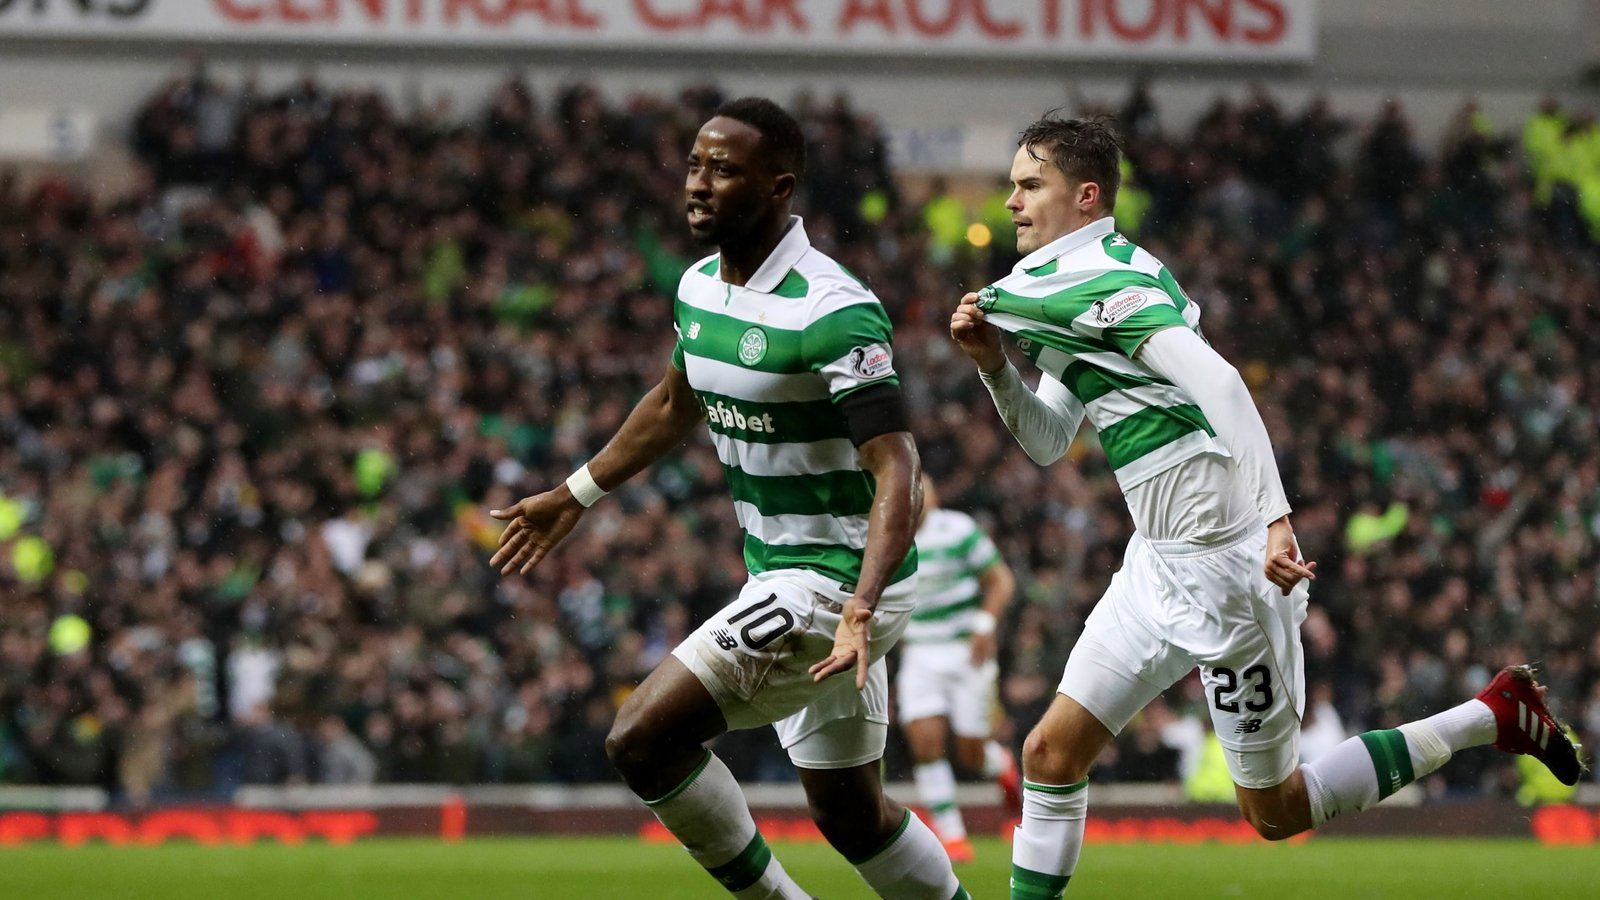 Celtic come from behind to book semi-final spot